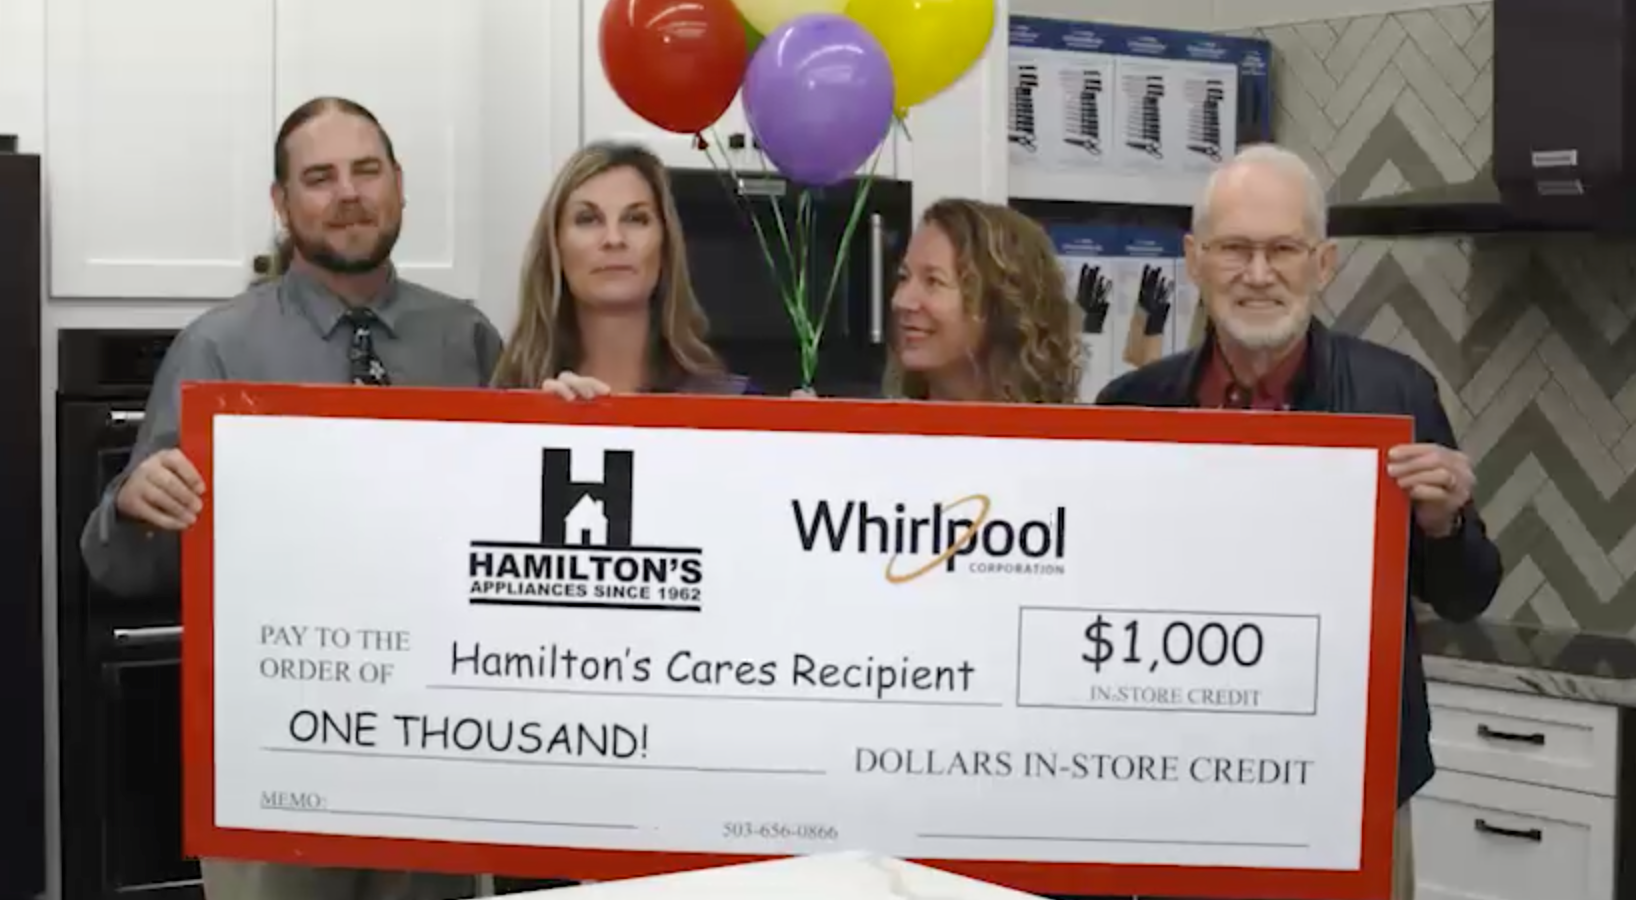 FPTV Receives Hamilton Cares Award A $1,000 grant towards home appliances! We purchased a washer and dryer and received a discount on our stove! Thank you Hamilton and KGW.